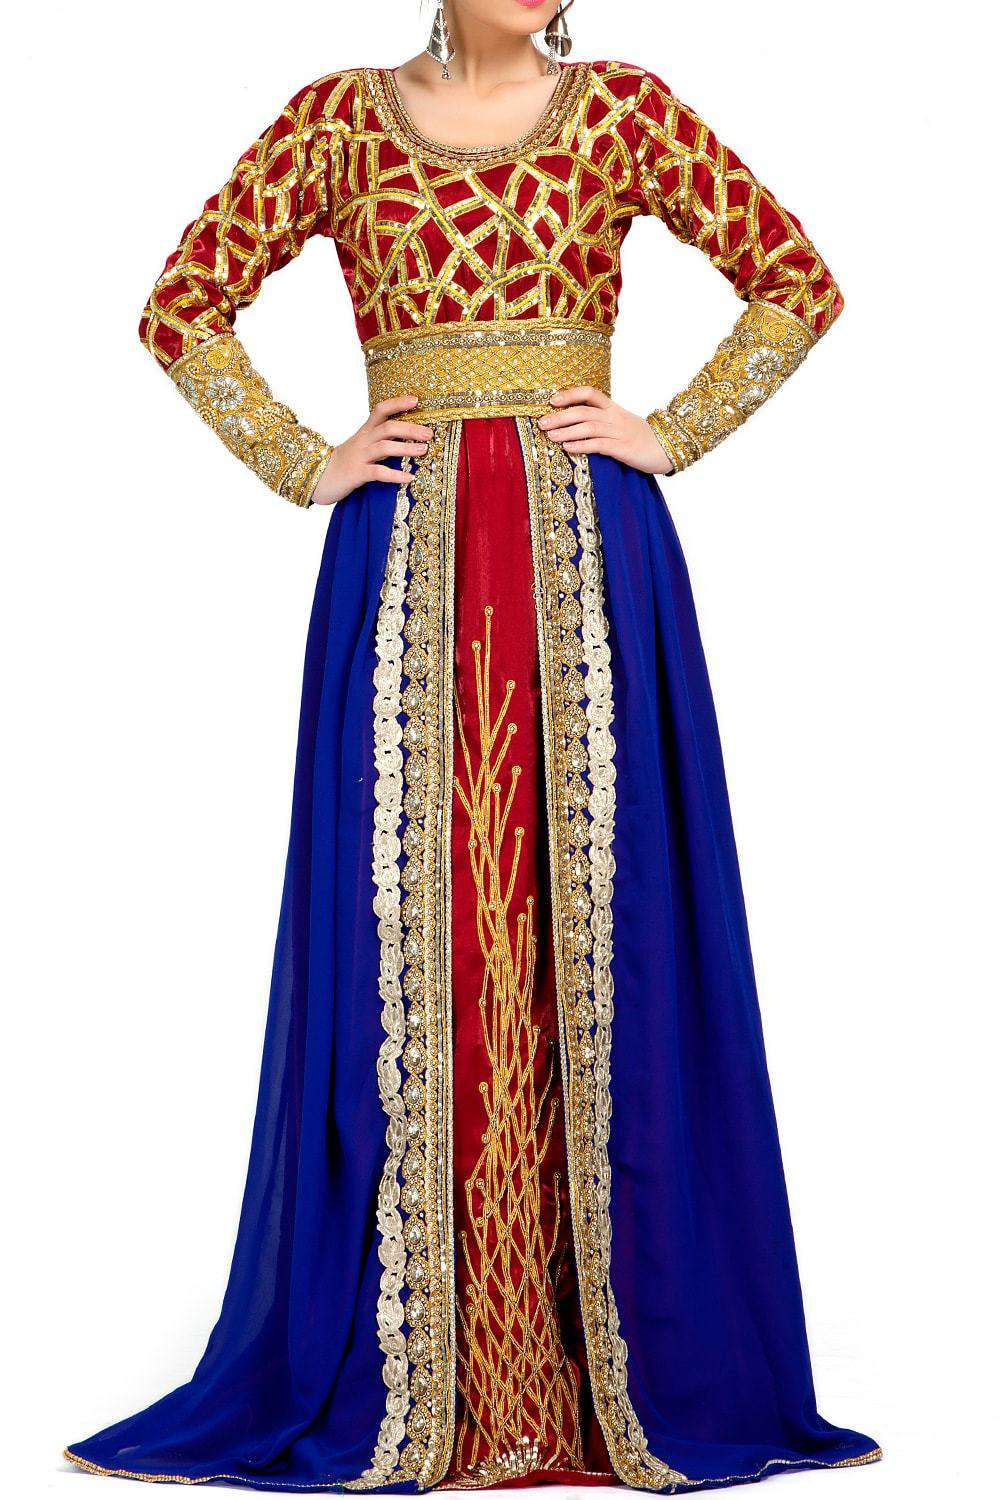 Blue and Maroon Red Color Exclusive Georgette Designer Caftan